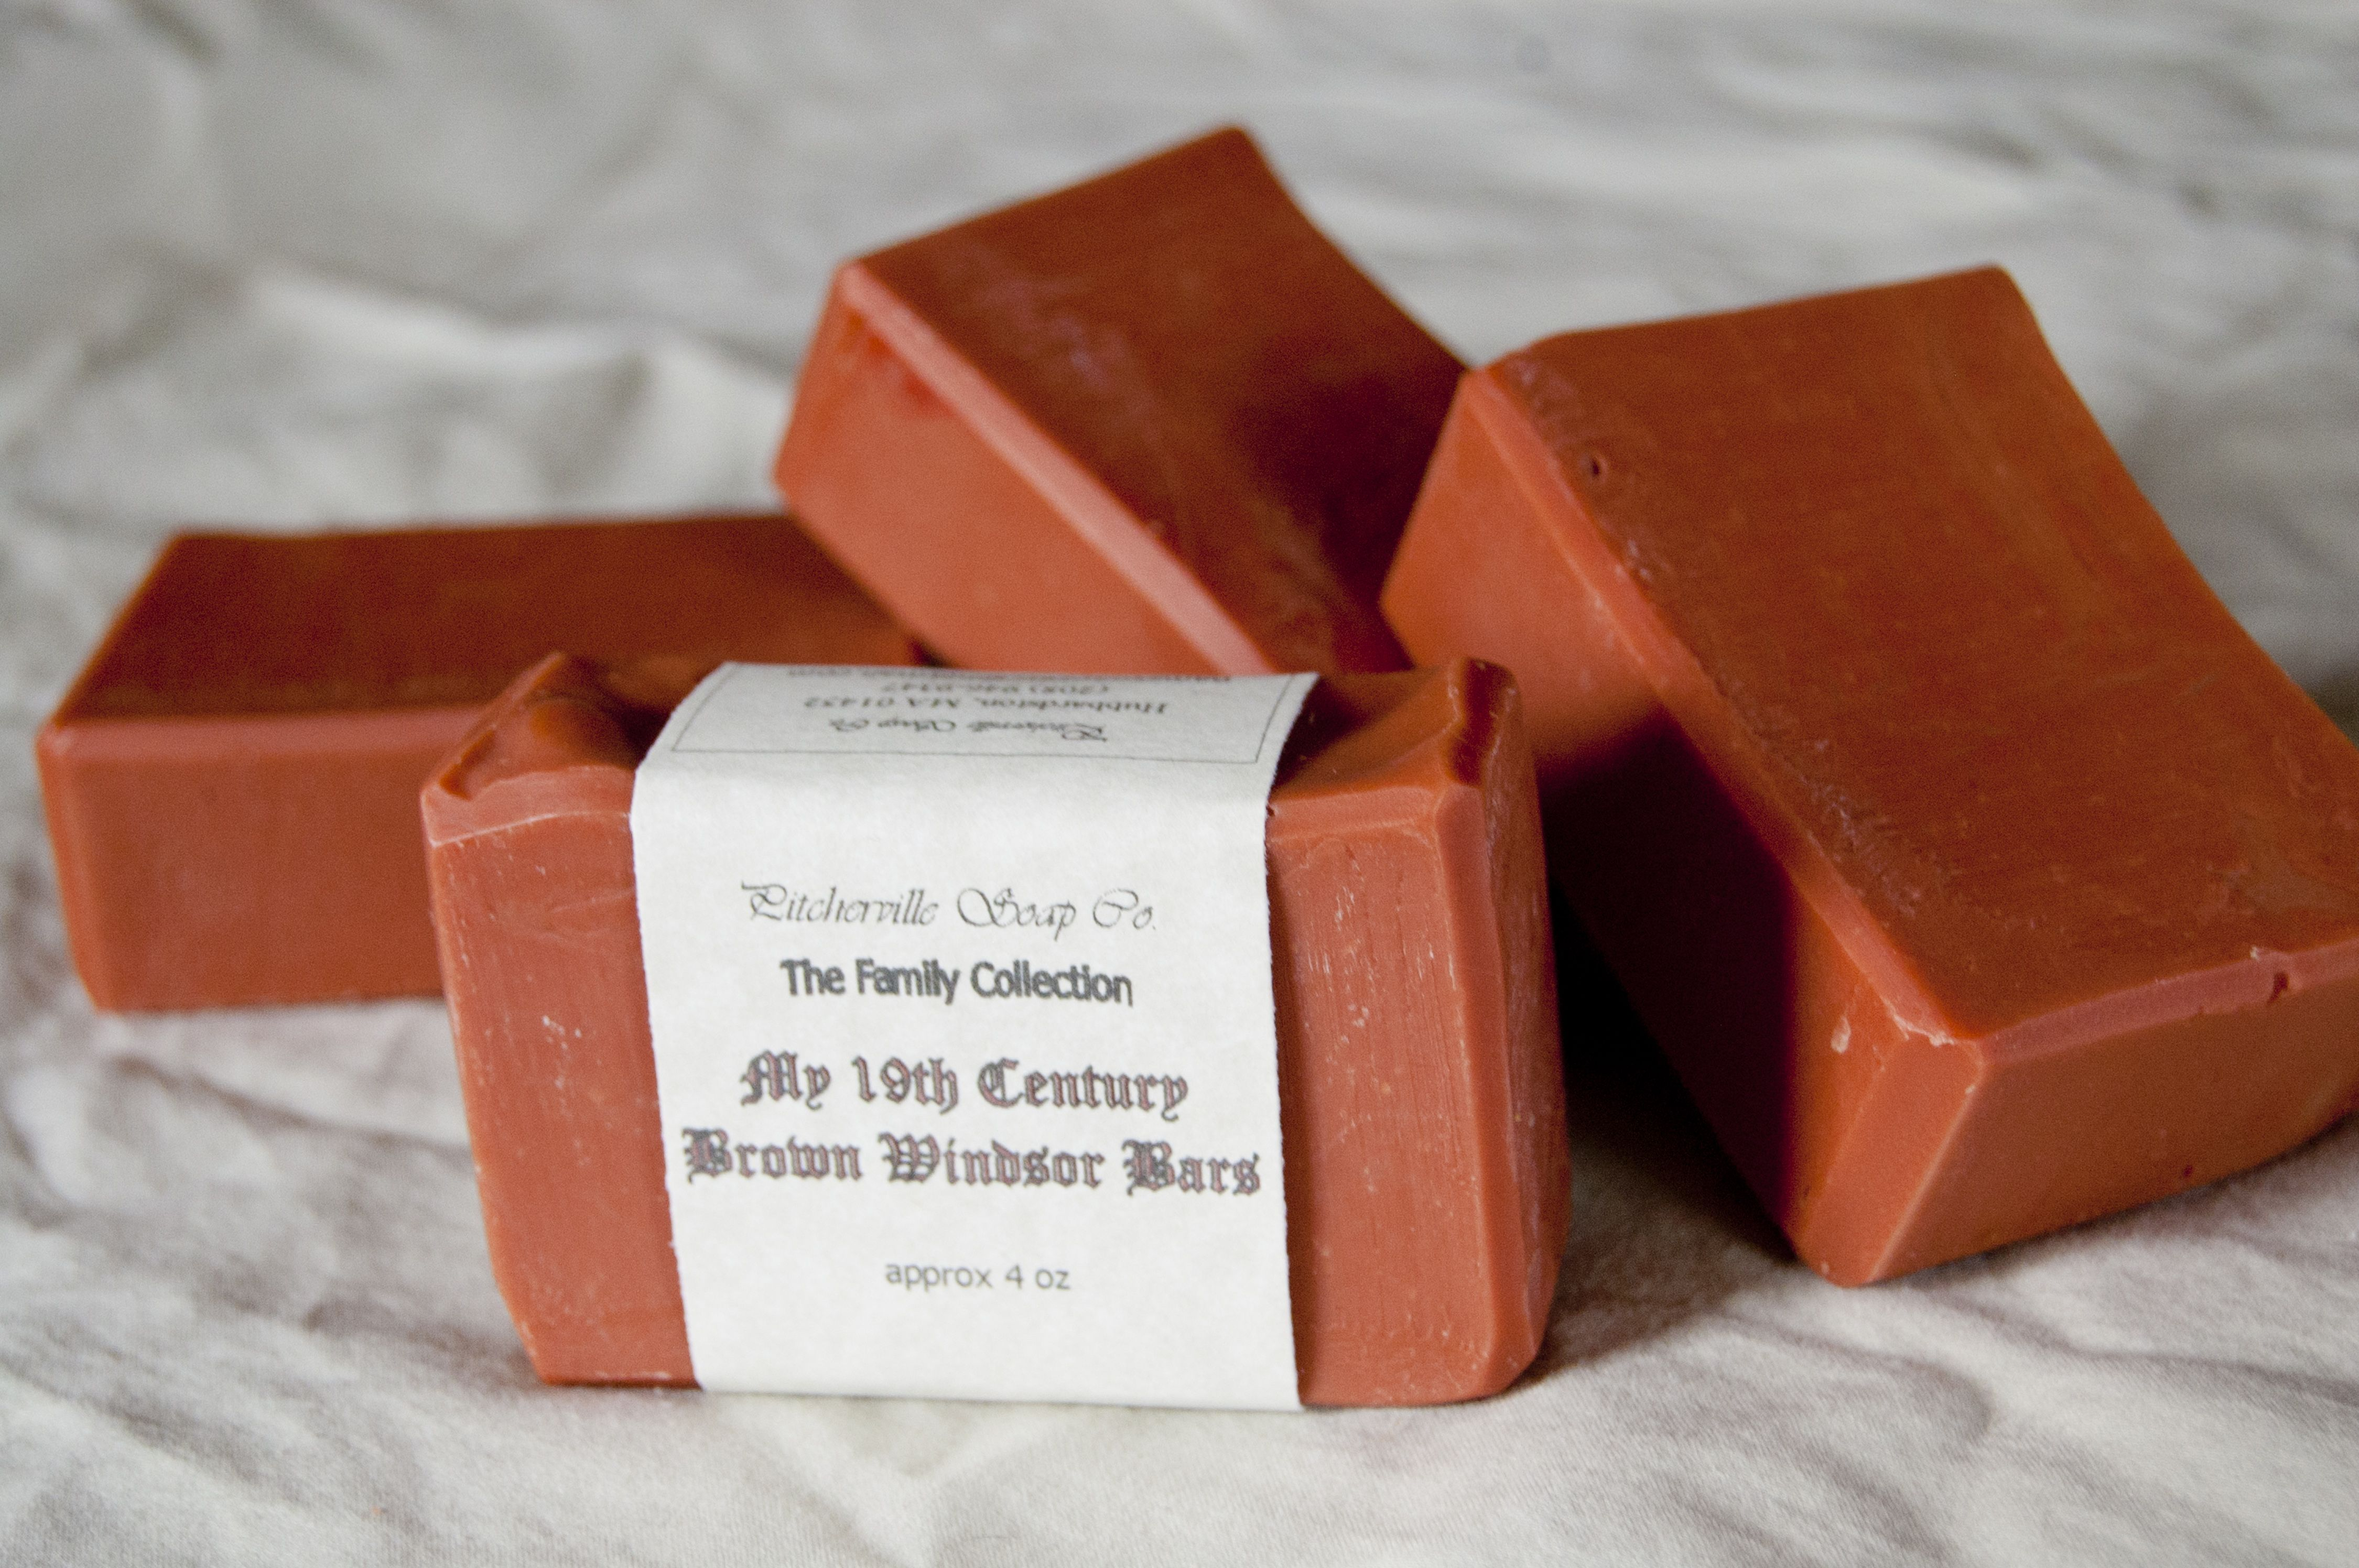 My 19th Century Brown Windsor Bars--We just had to try this one. Its origins date back to the 19th century (imagine that!!) and we really like old things. Clay is added as a mild exfoliant, and essential oils of cassia, lavandin, cumin, clove and thyme are added for scent.